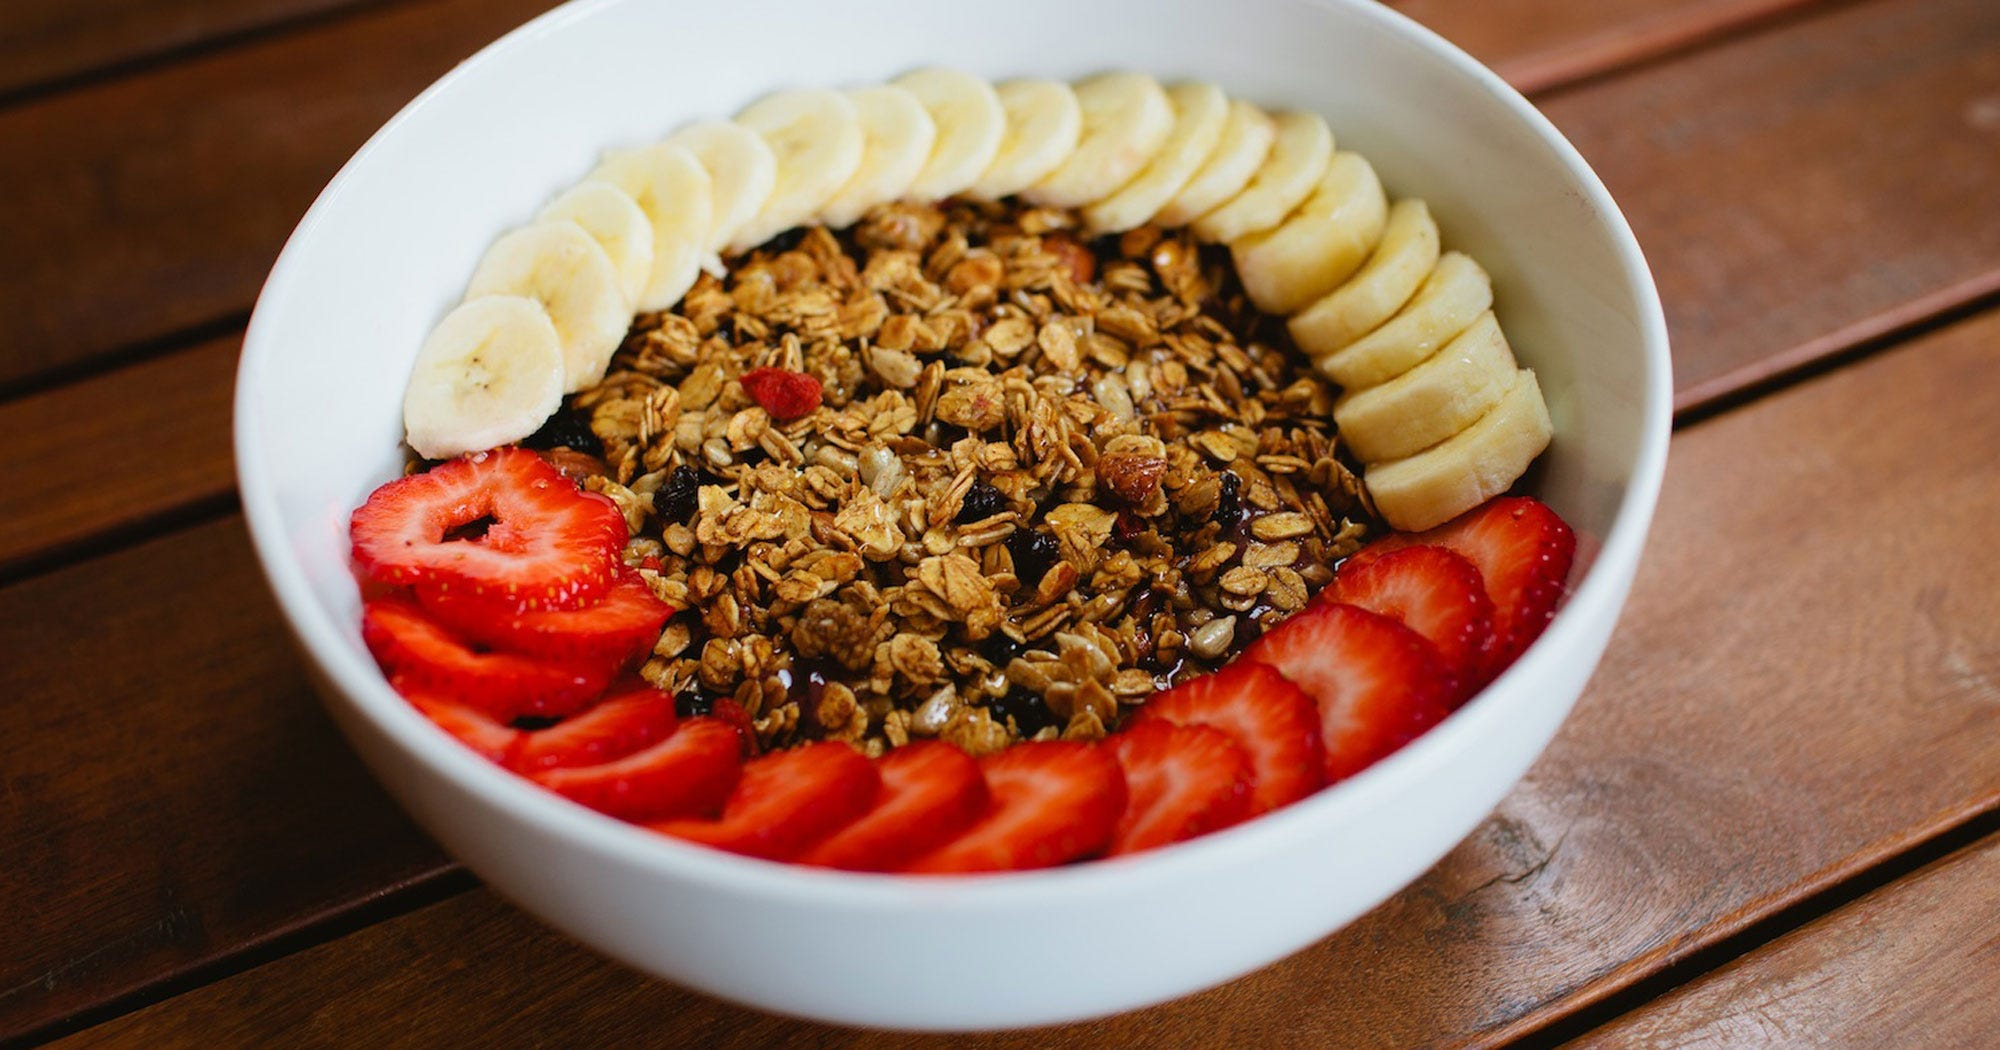 How To Make Sure Your Granola Is Actually Good For You